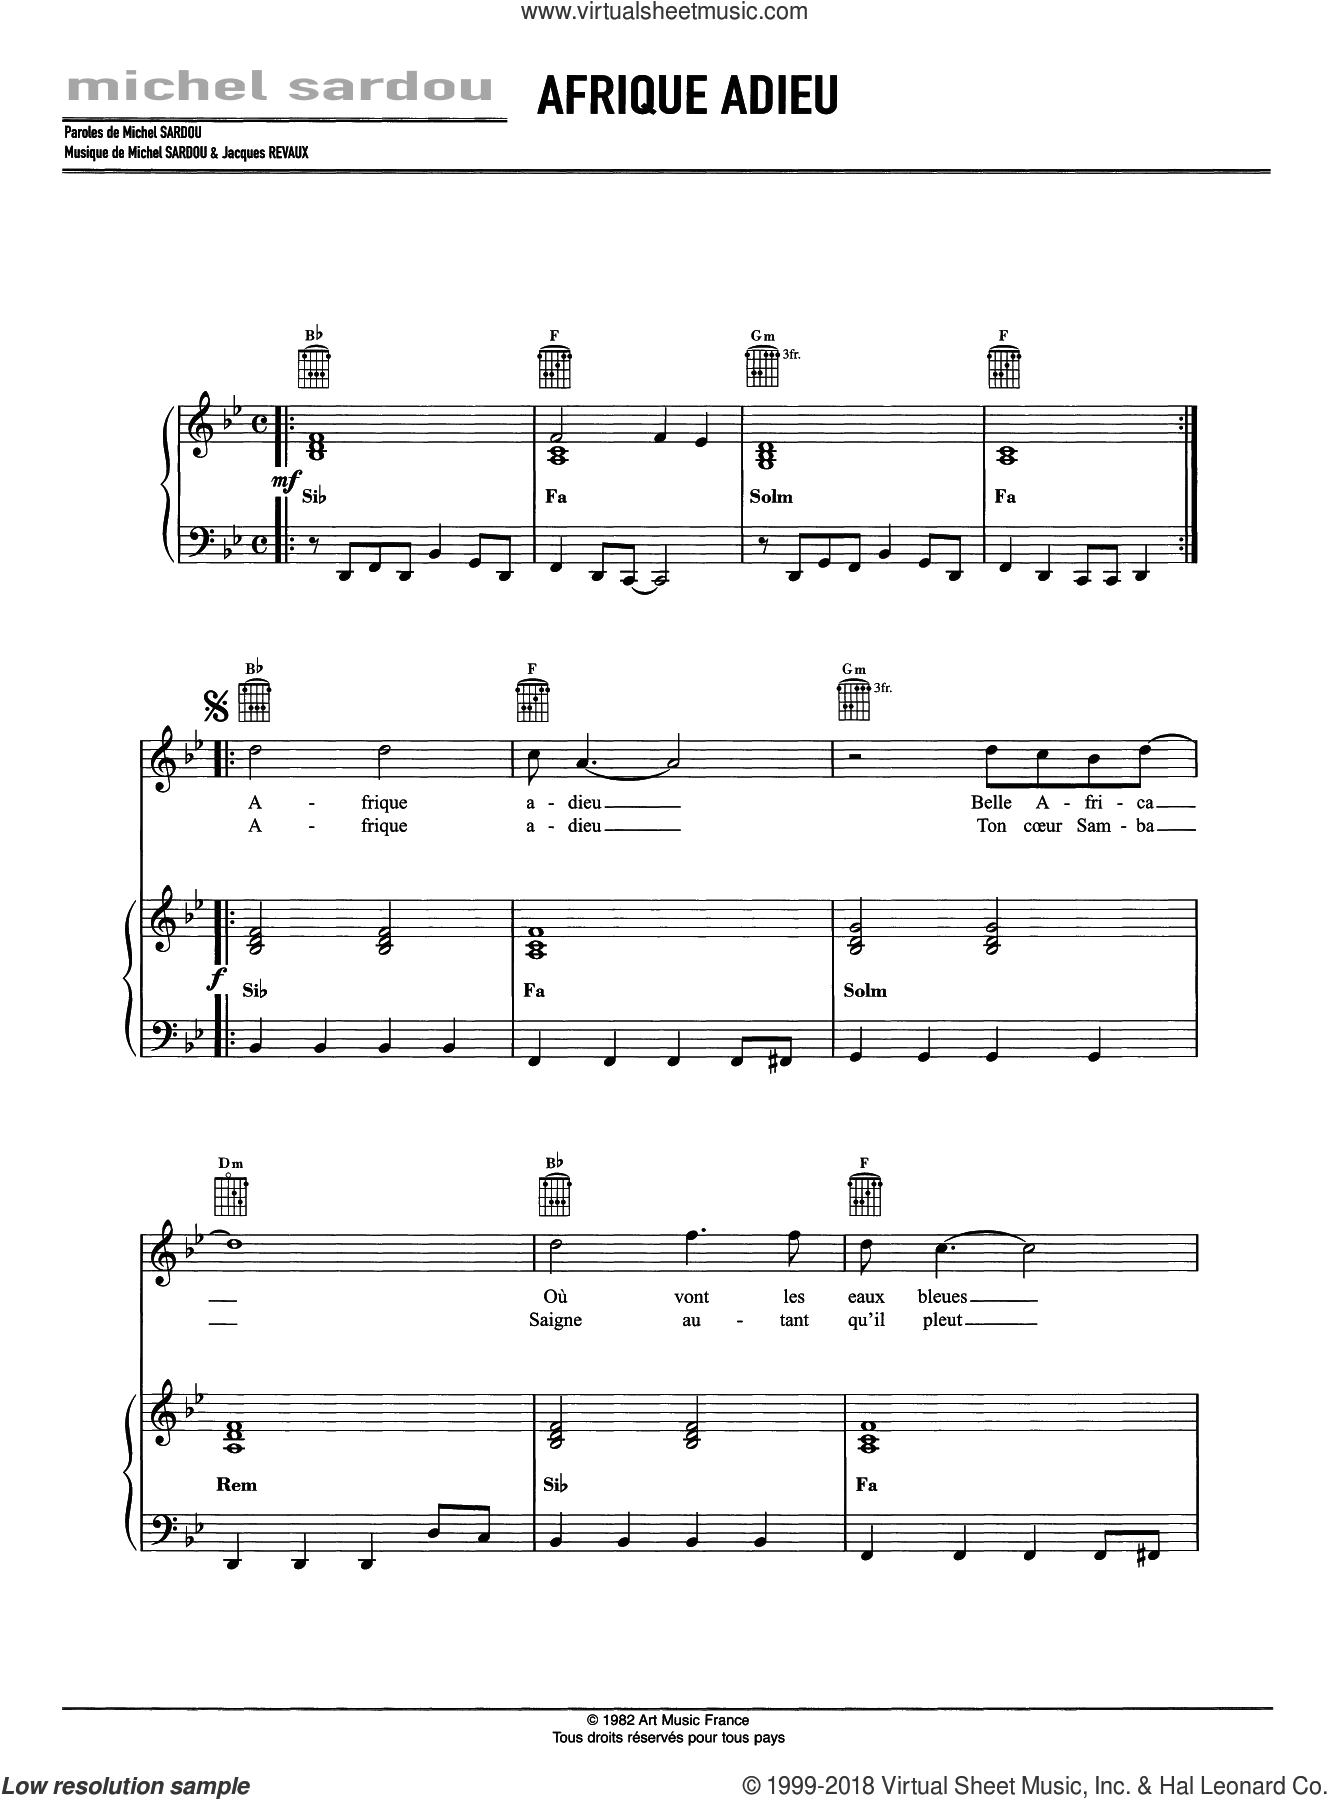 Afrique Adieu sheet music for voice, piano or guitar by Michel Sardou and Jacques Revaux, intermediate skill level